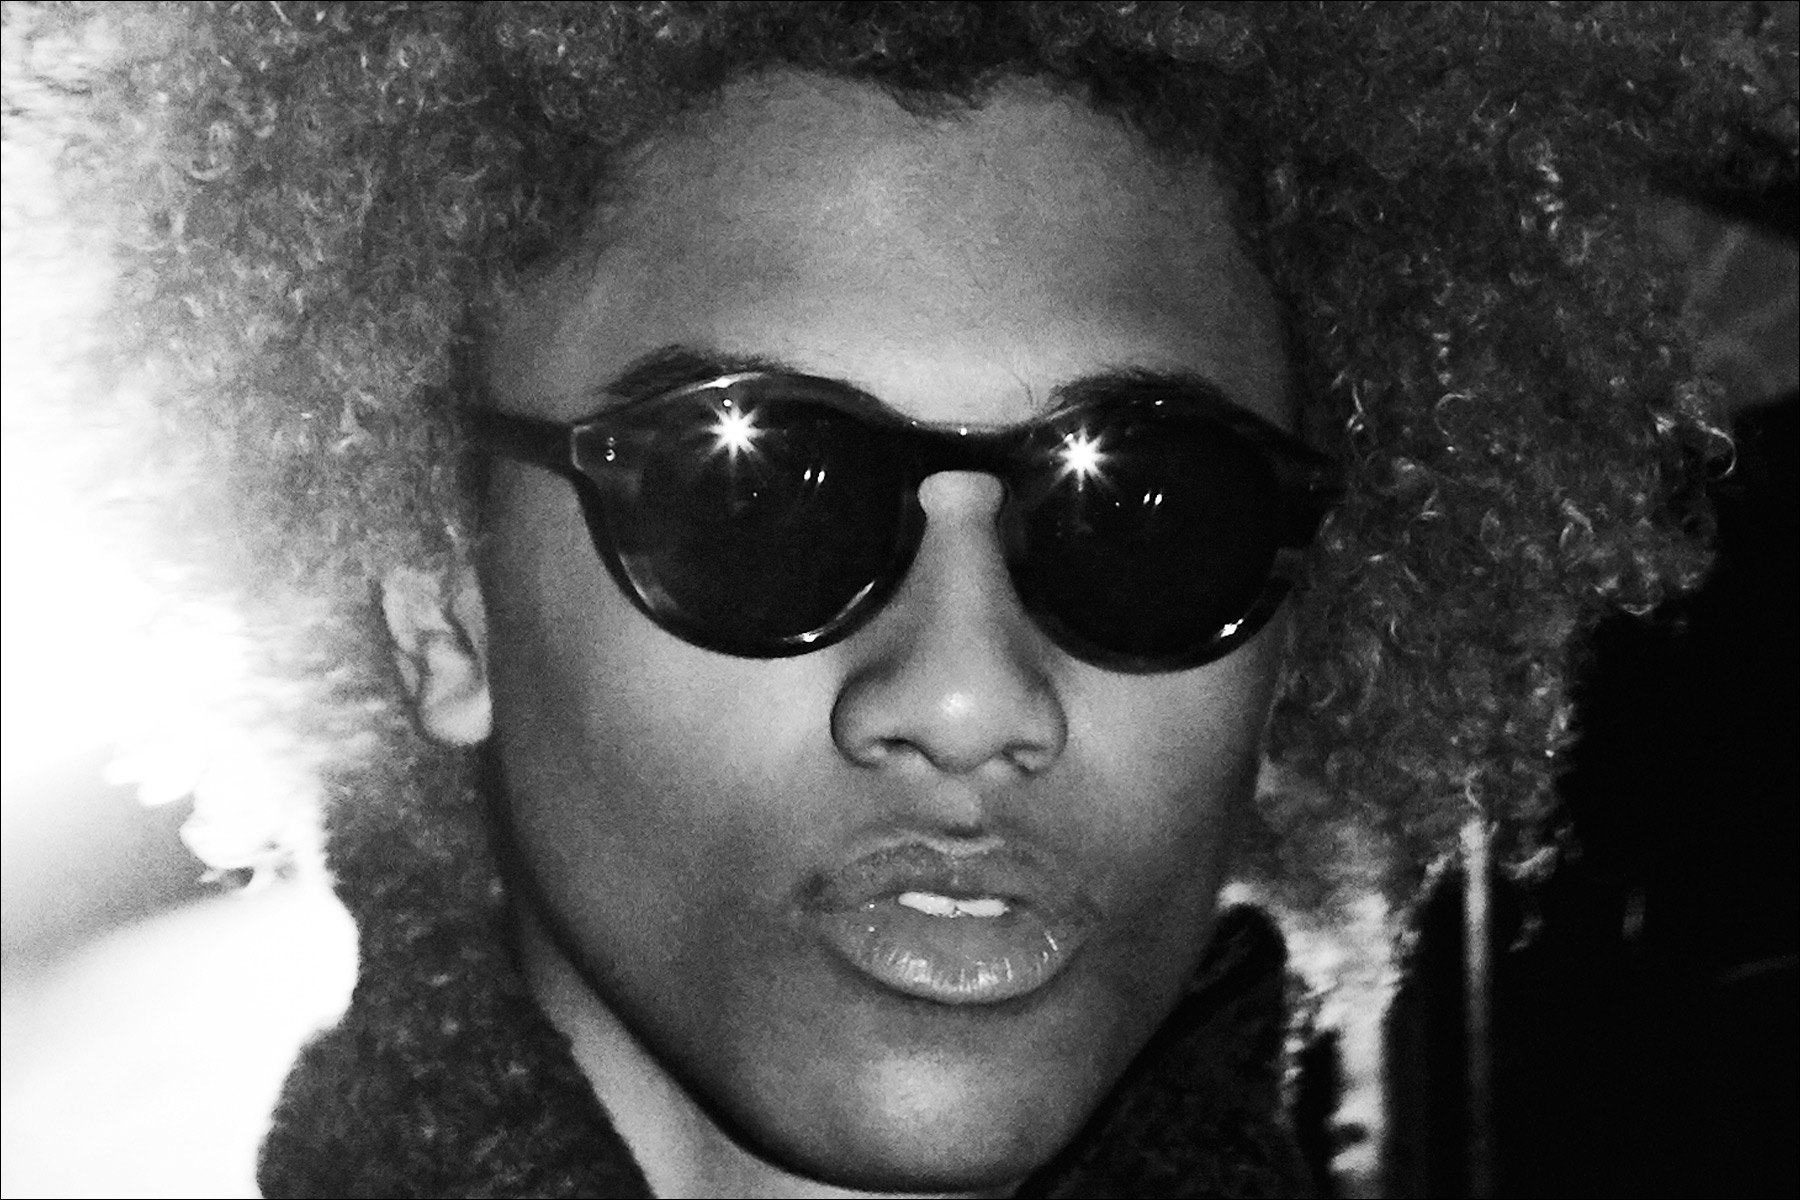 Model Michael Lockley photographed in sunglasses backstage at the John Varvatos Fall/Winter 2017 menswear show. Photography by Alexander Thompson for Ponyboy magazine NY.